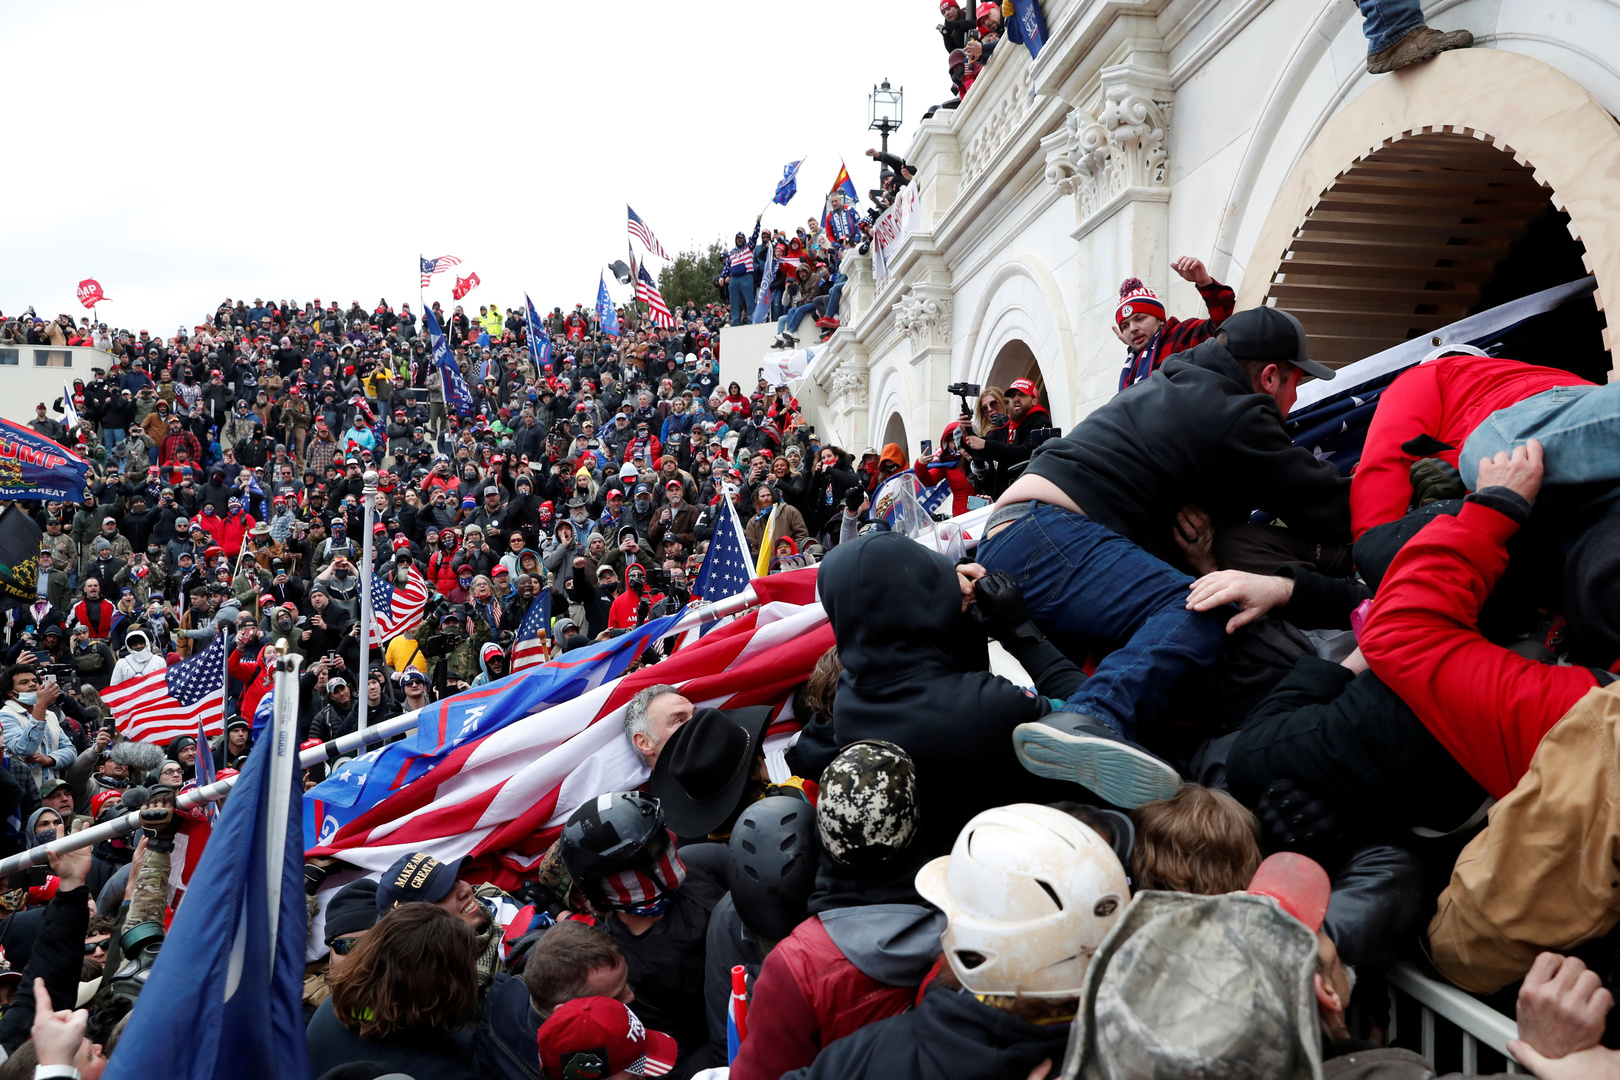 The storming of the US Congress ... More than 50 policemen were injured and 68 people arrested